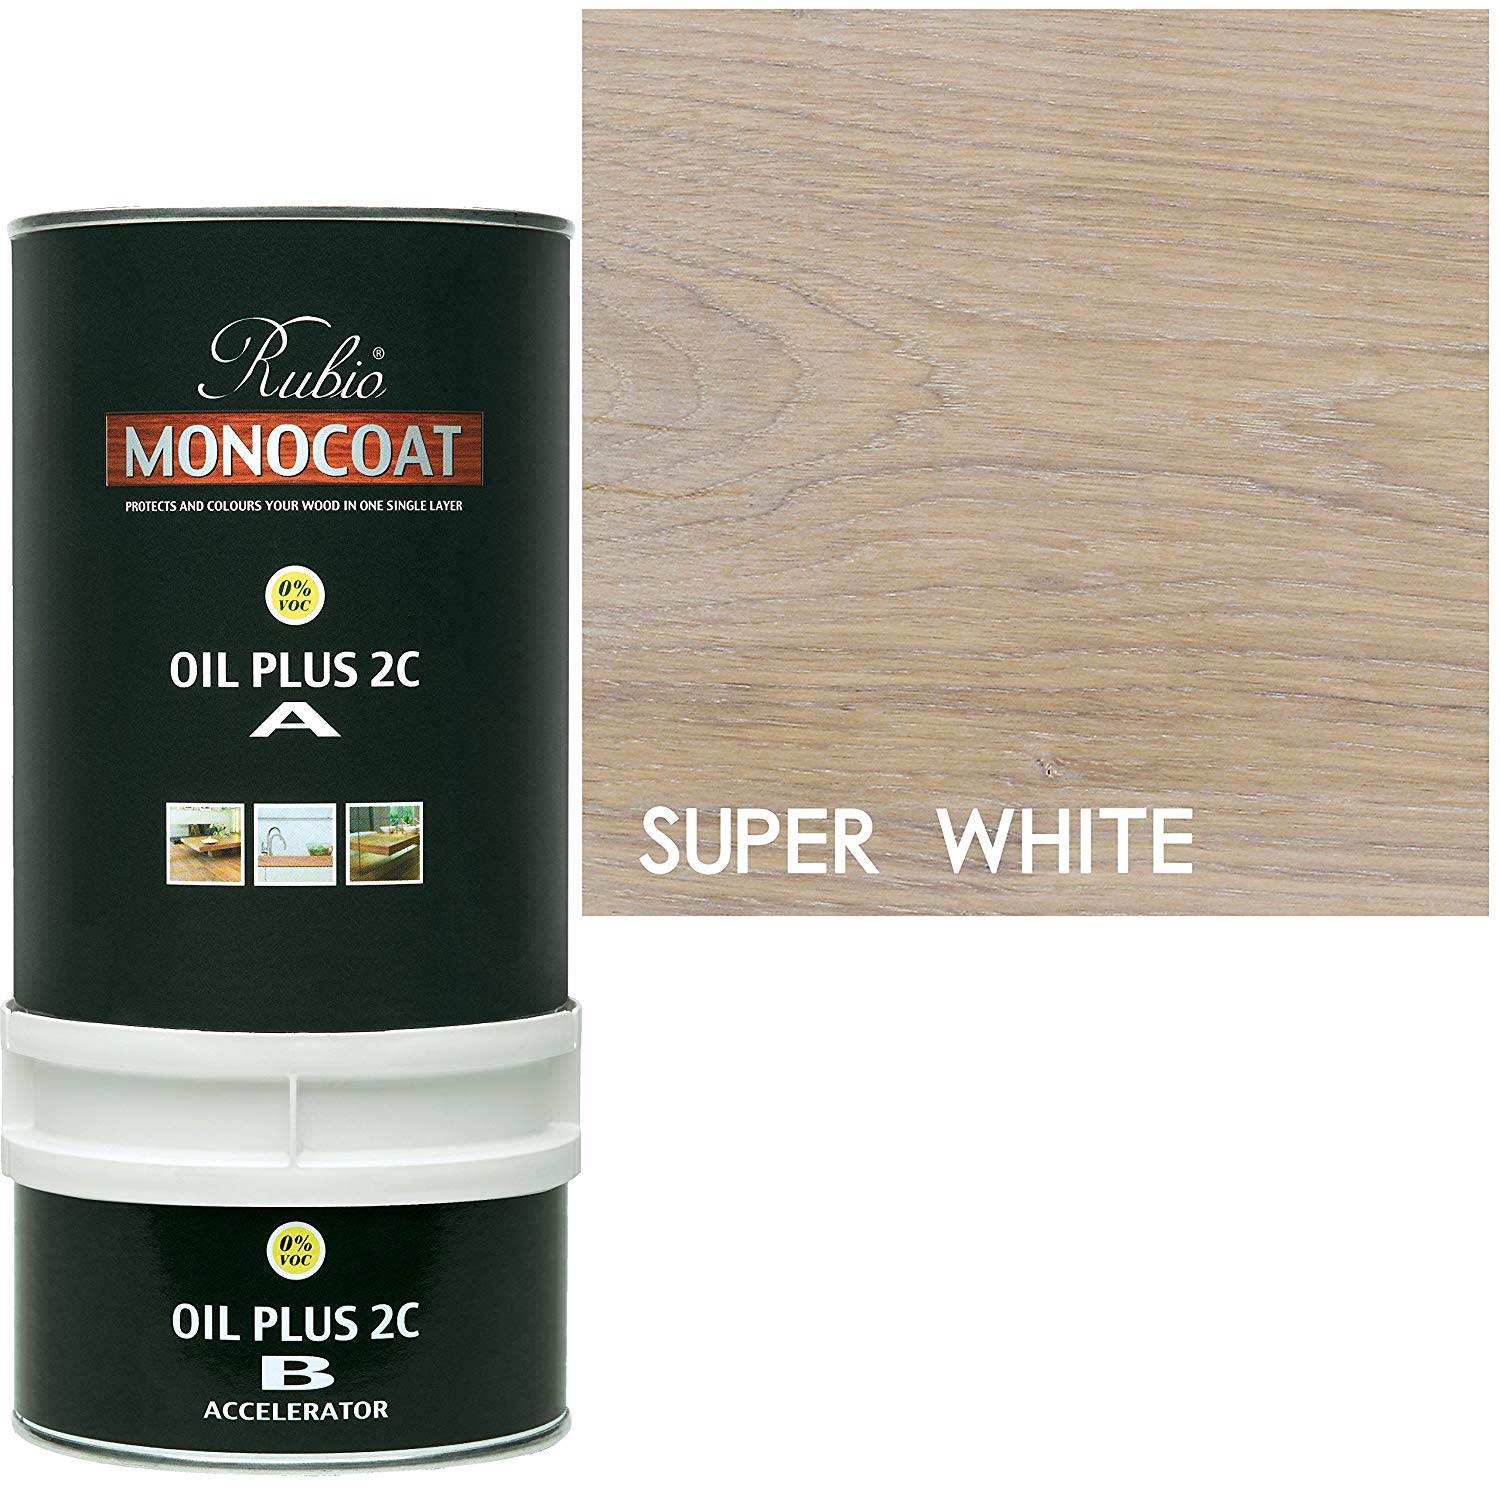 Rubio Monocoat Oil Plus 2C - Super white